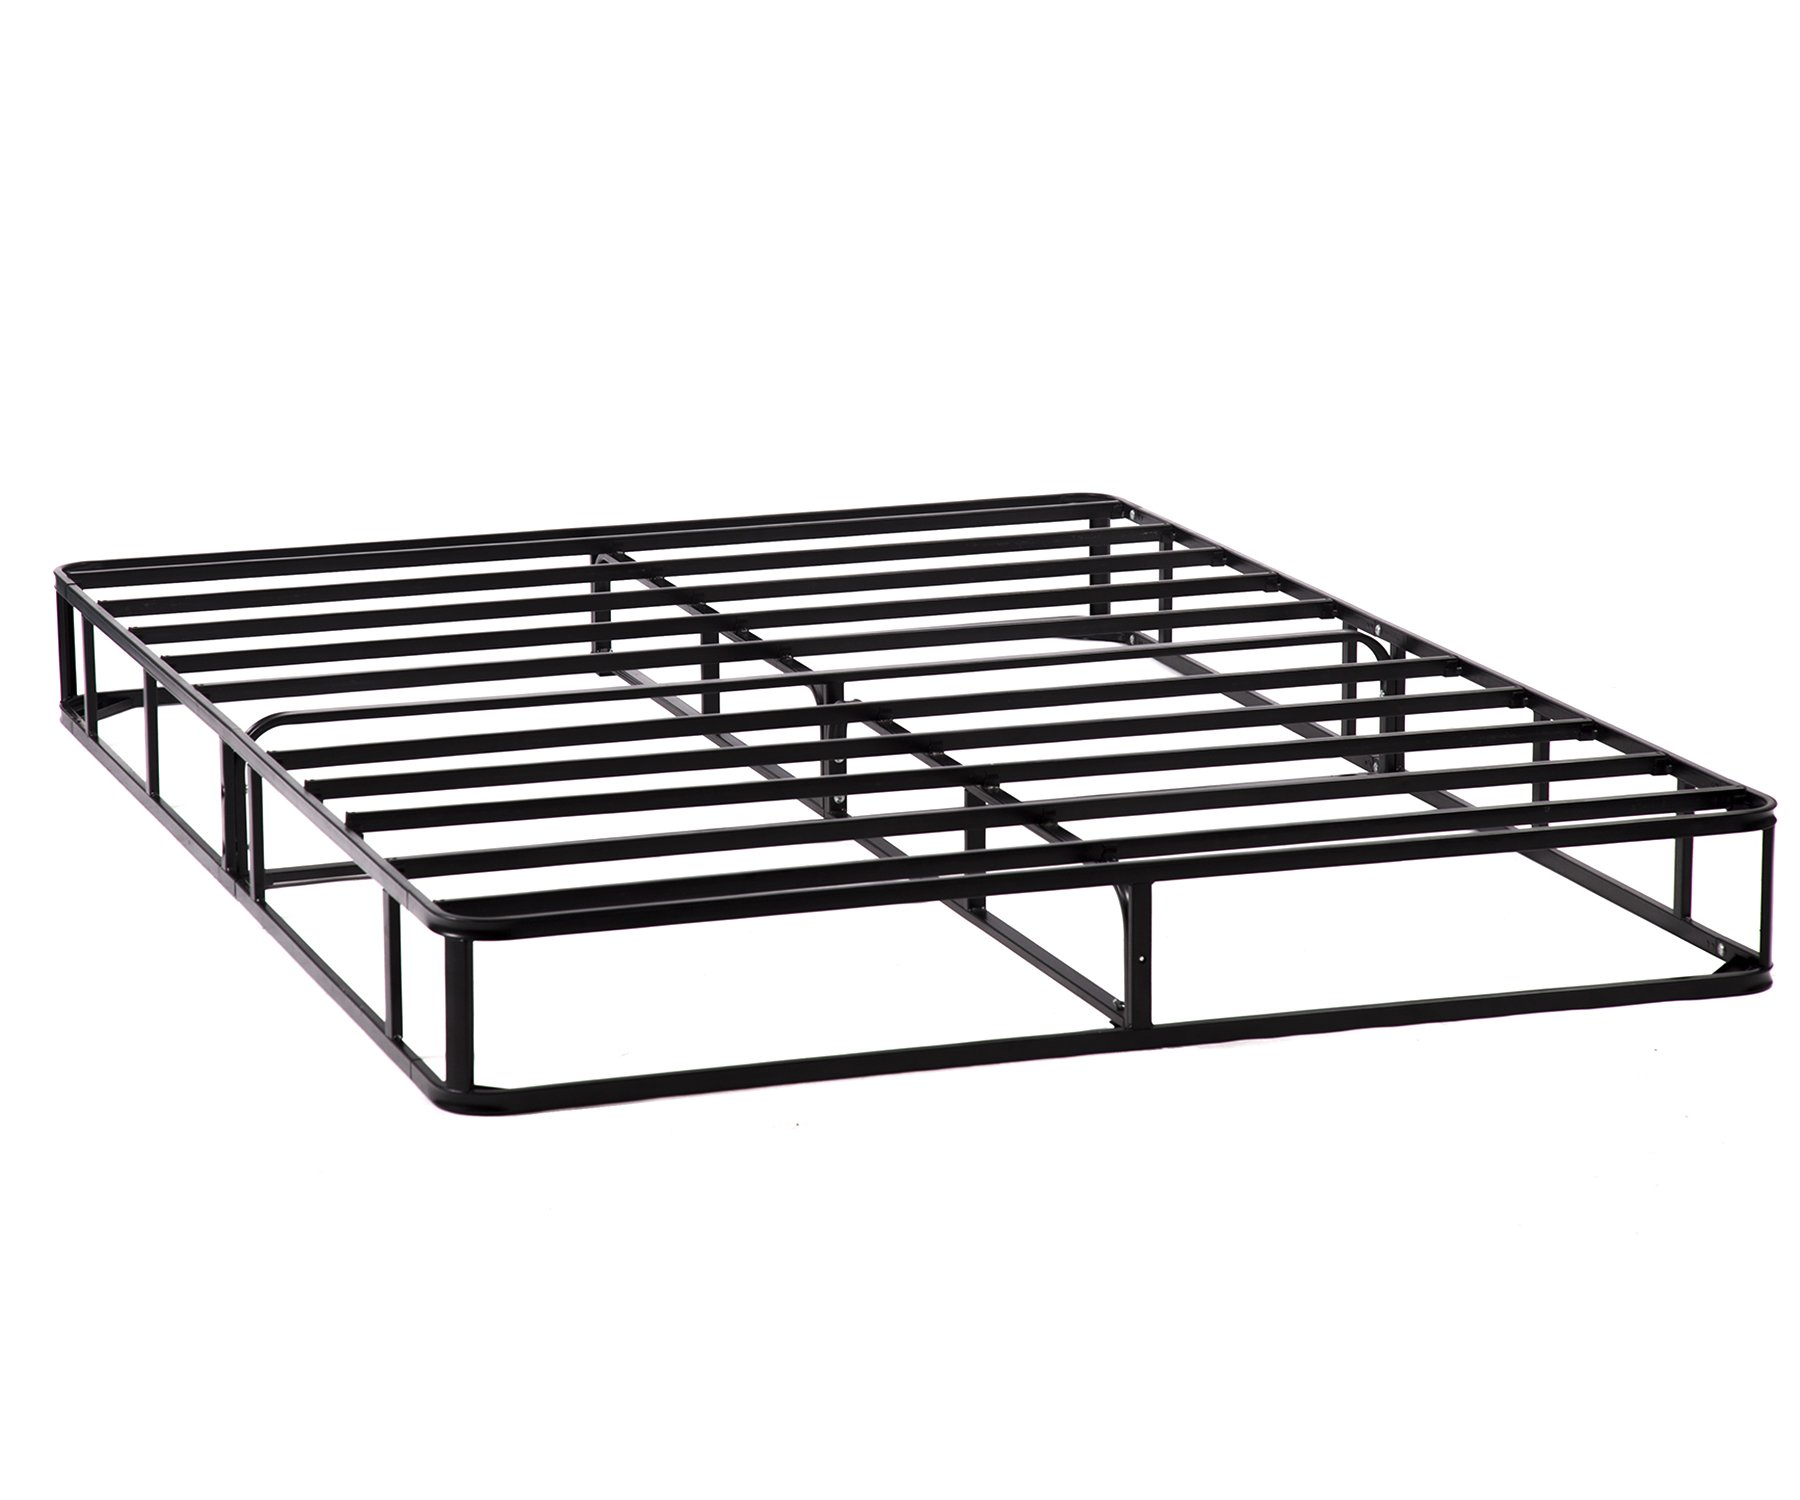 PayLessHere 8 Inch Queen Smart Box Spring Mattress Foundation Strong Steel Structure